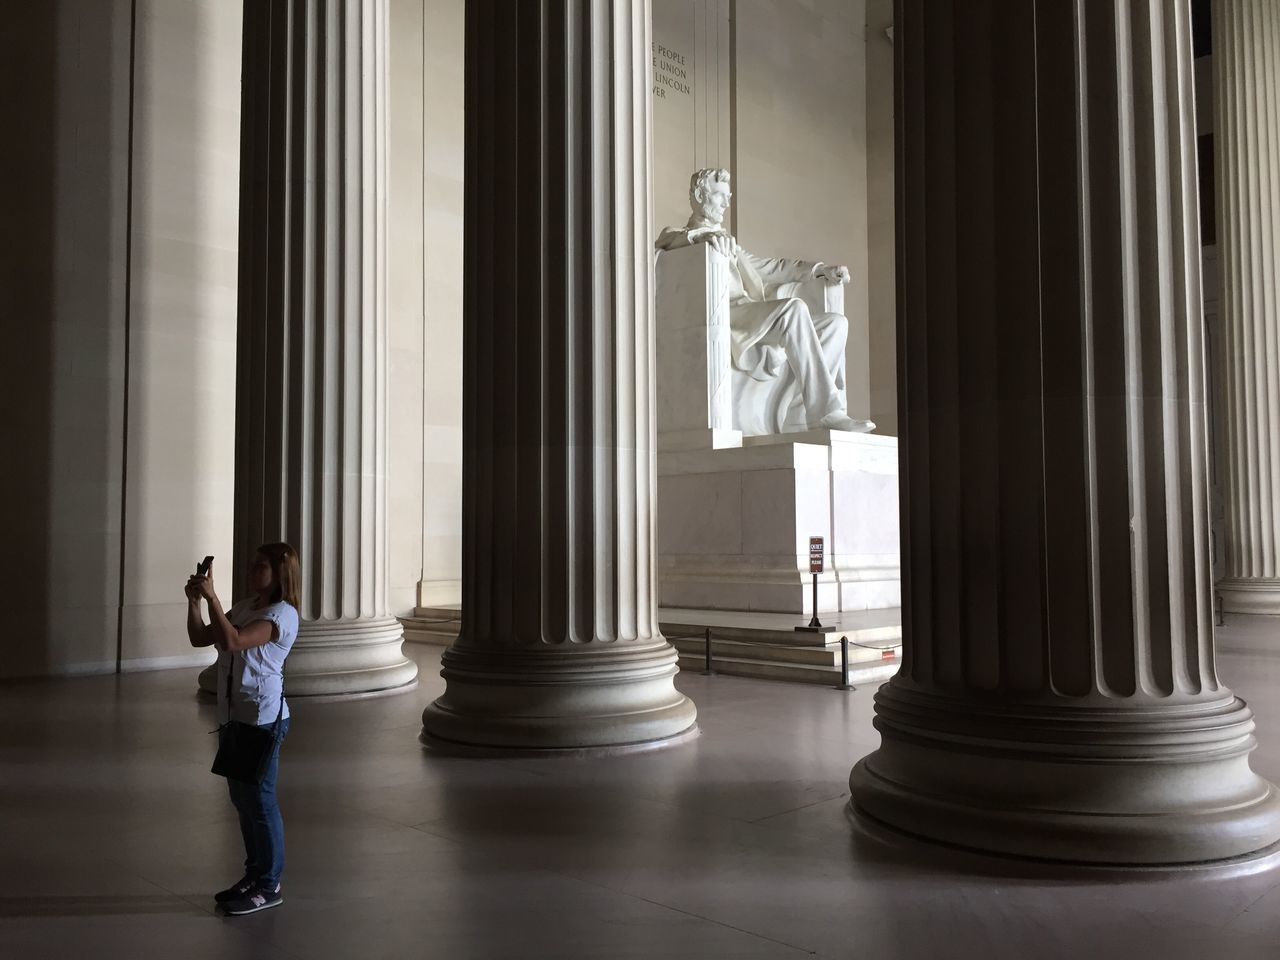 Statue Real People Human Representation Architectural Column Sculpture Casual Clothing Patriotism Flag Full Length Day Indoors  Women Architecture One Person